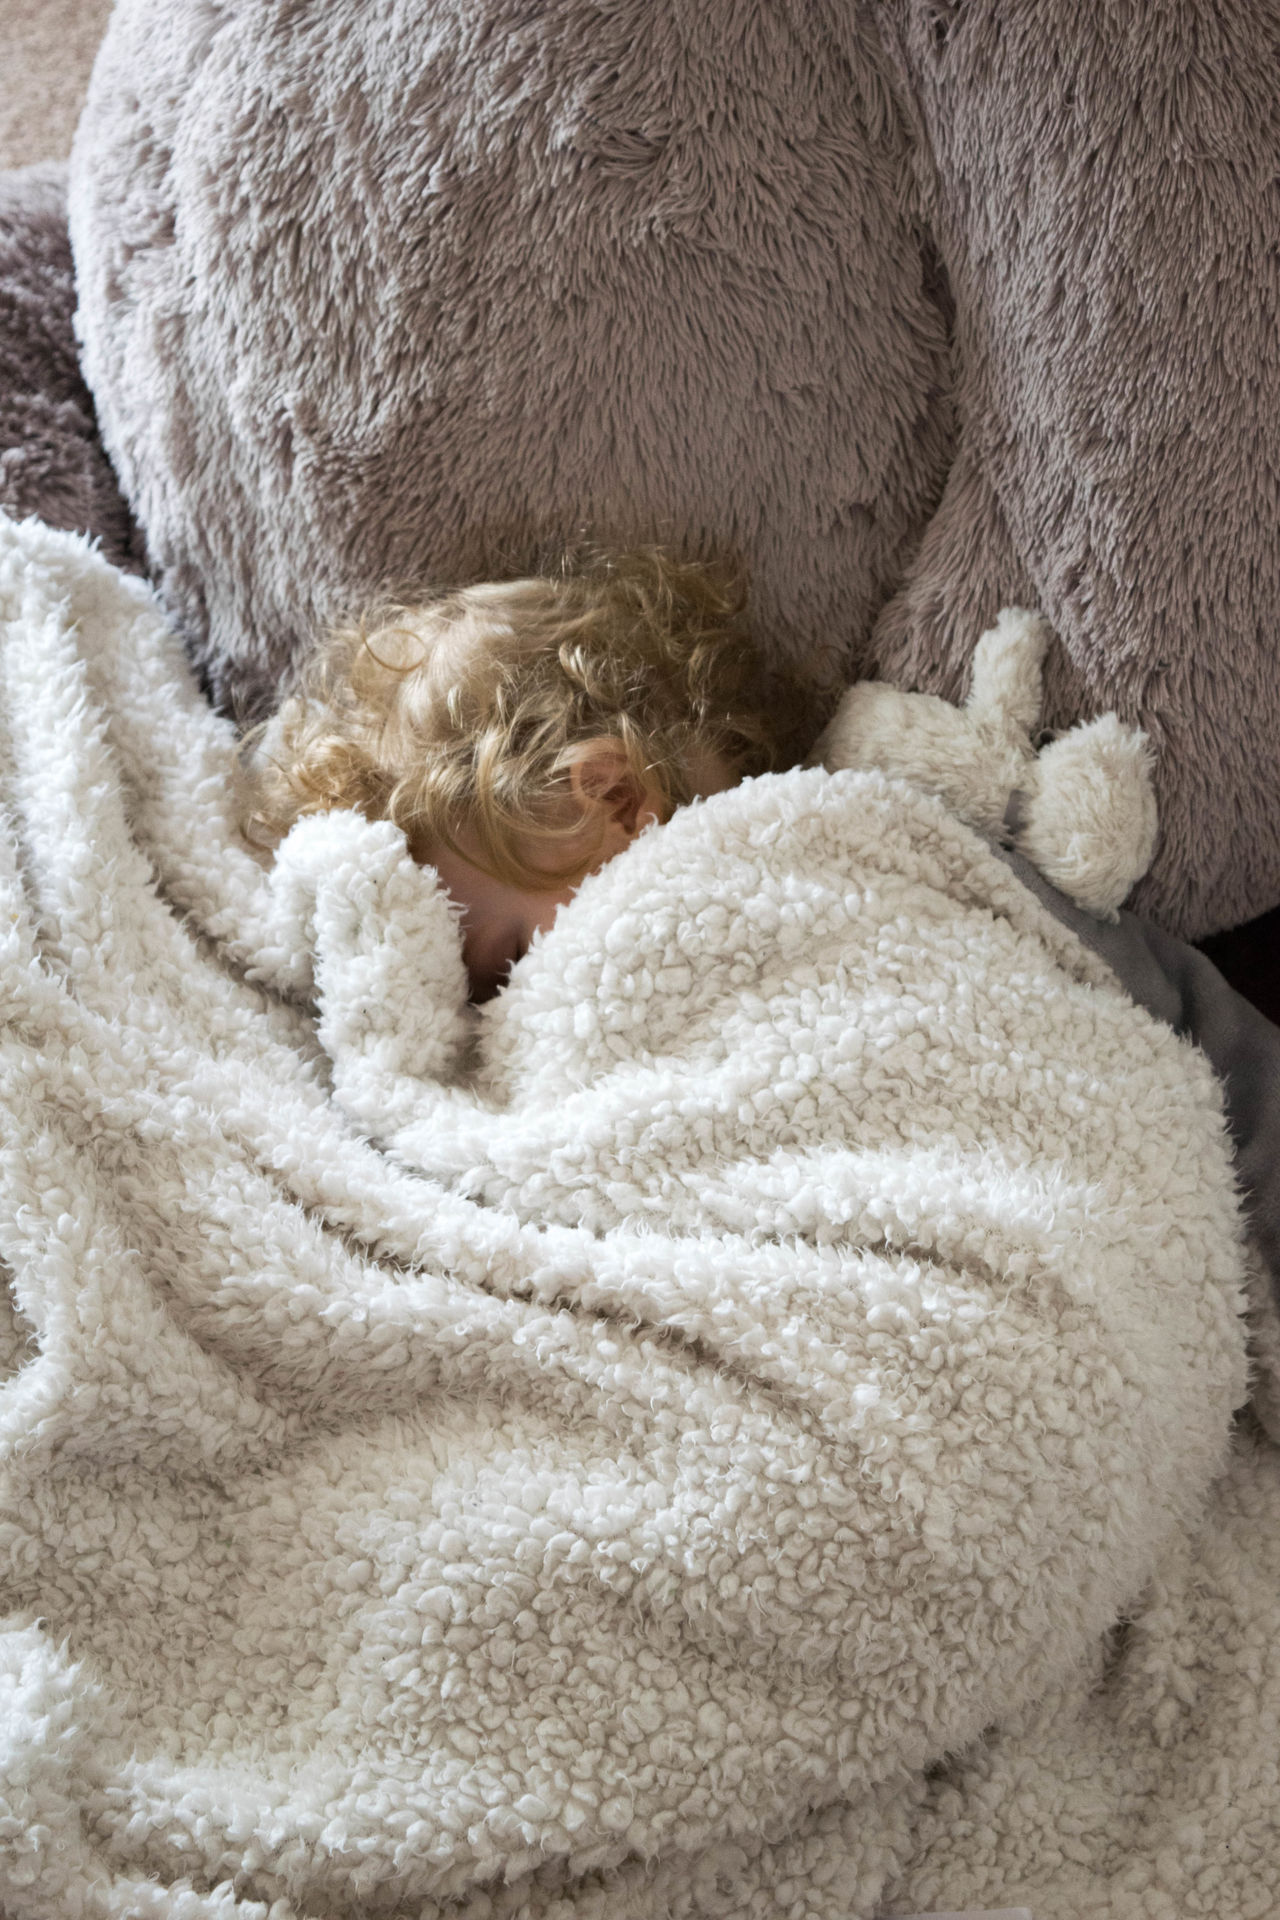 Bear Blanket Child Childhood Comfort Cuddle Curles Cute Day Indoors  Innocence Little Nap Naptime Precious Rest Sleep Small Snuggle Stuffed Bear Stuffed Toy Teddybear Tiny Toddler  Youth